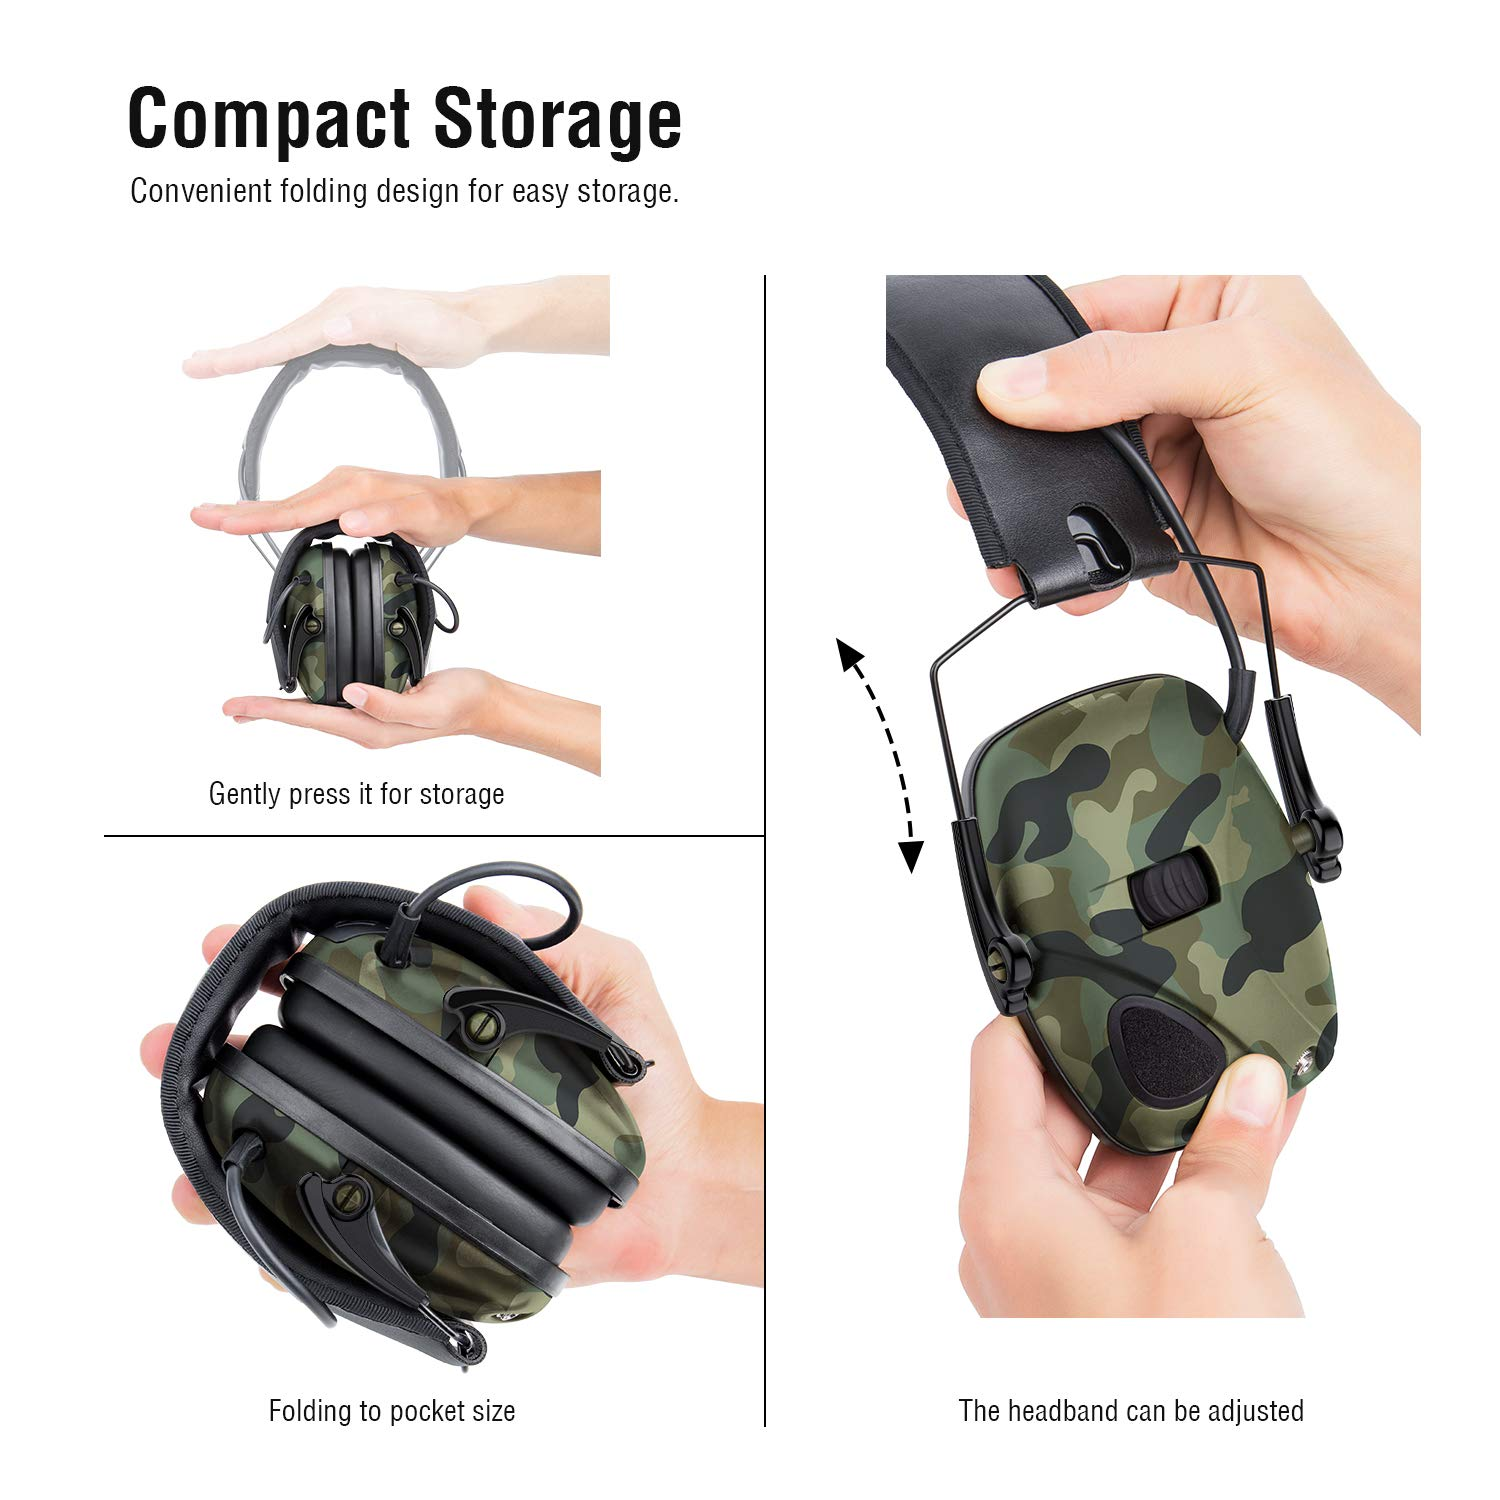 Awesafe Electronic Shooting Earmuff, Awesafe GF01 Noise Reduction Sound Amplification Electronic Safety Ear Muffs, Ear Protection, NRR 22 dB, Ideal for Shooting and Hunting … Camon by awesafe  (Image #4)